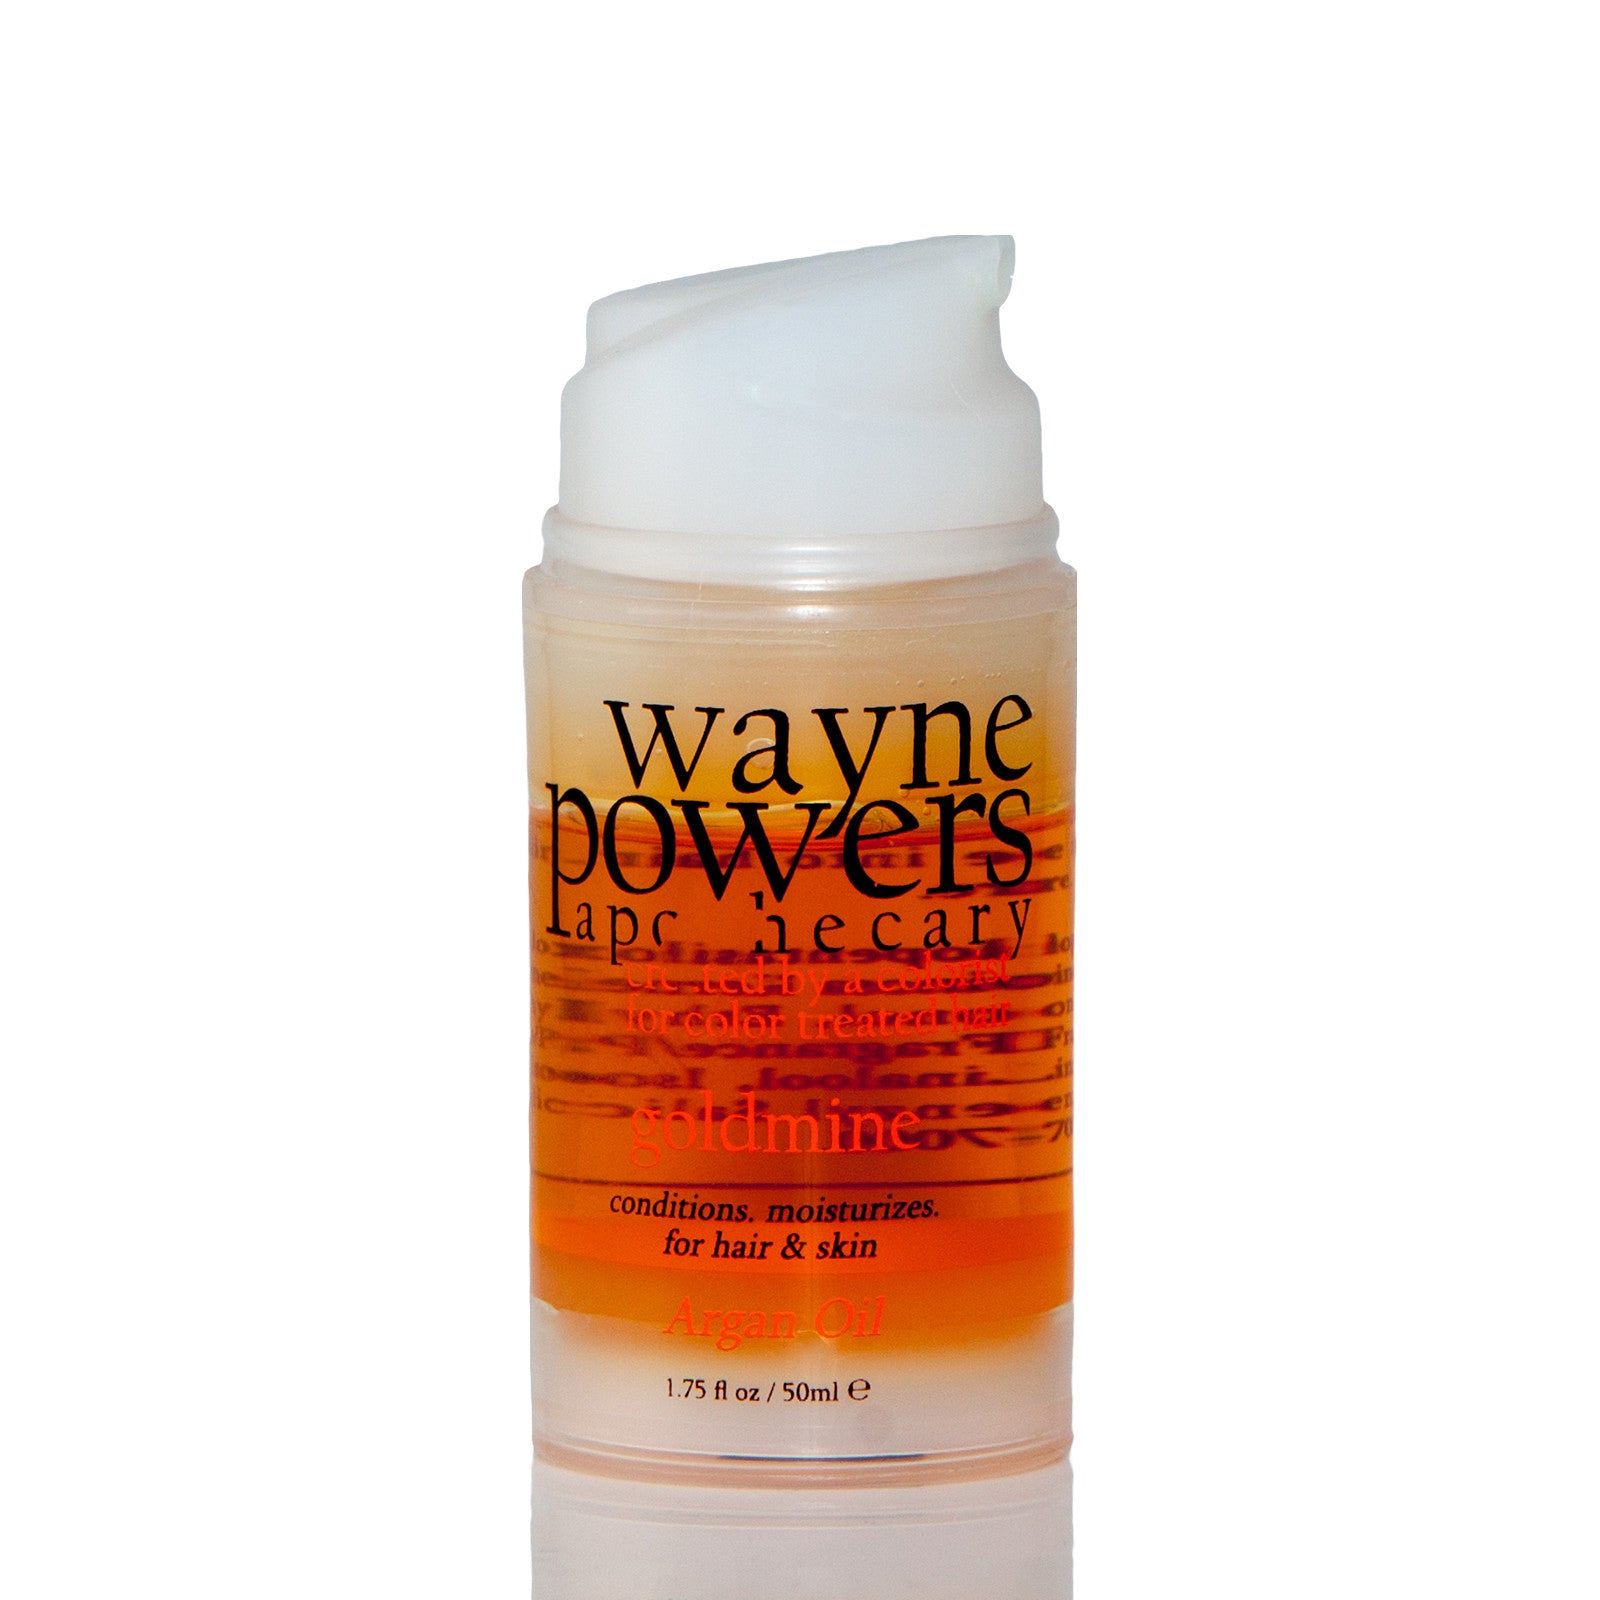 Goldmine Argan Oil Treatment by Wayne Powers Apothecary